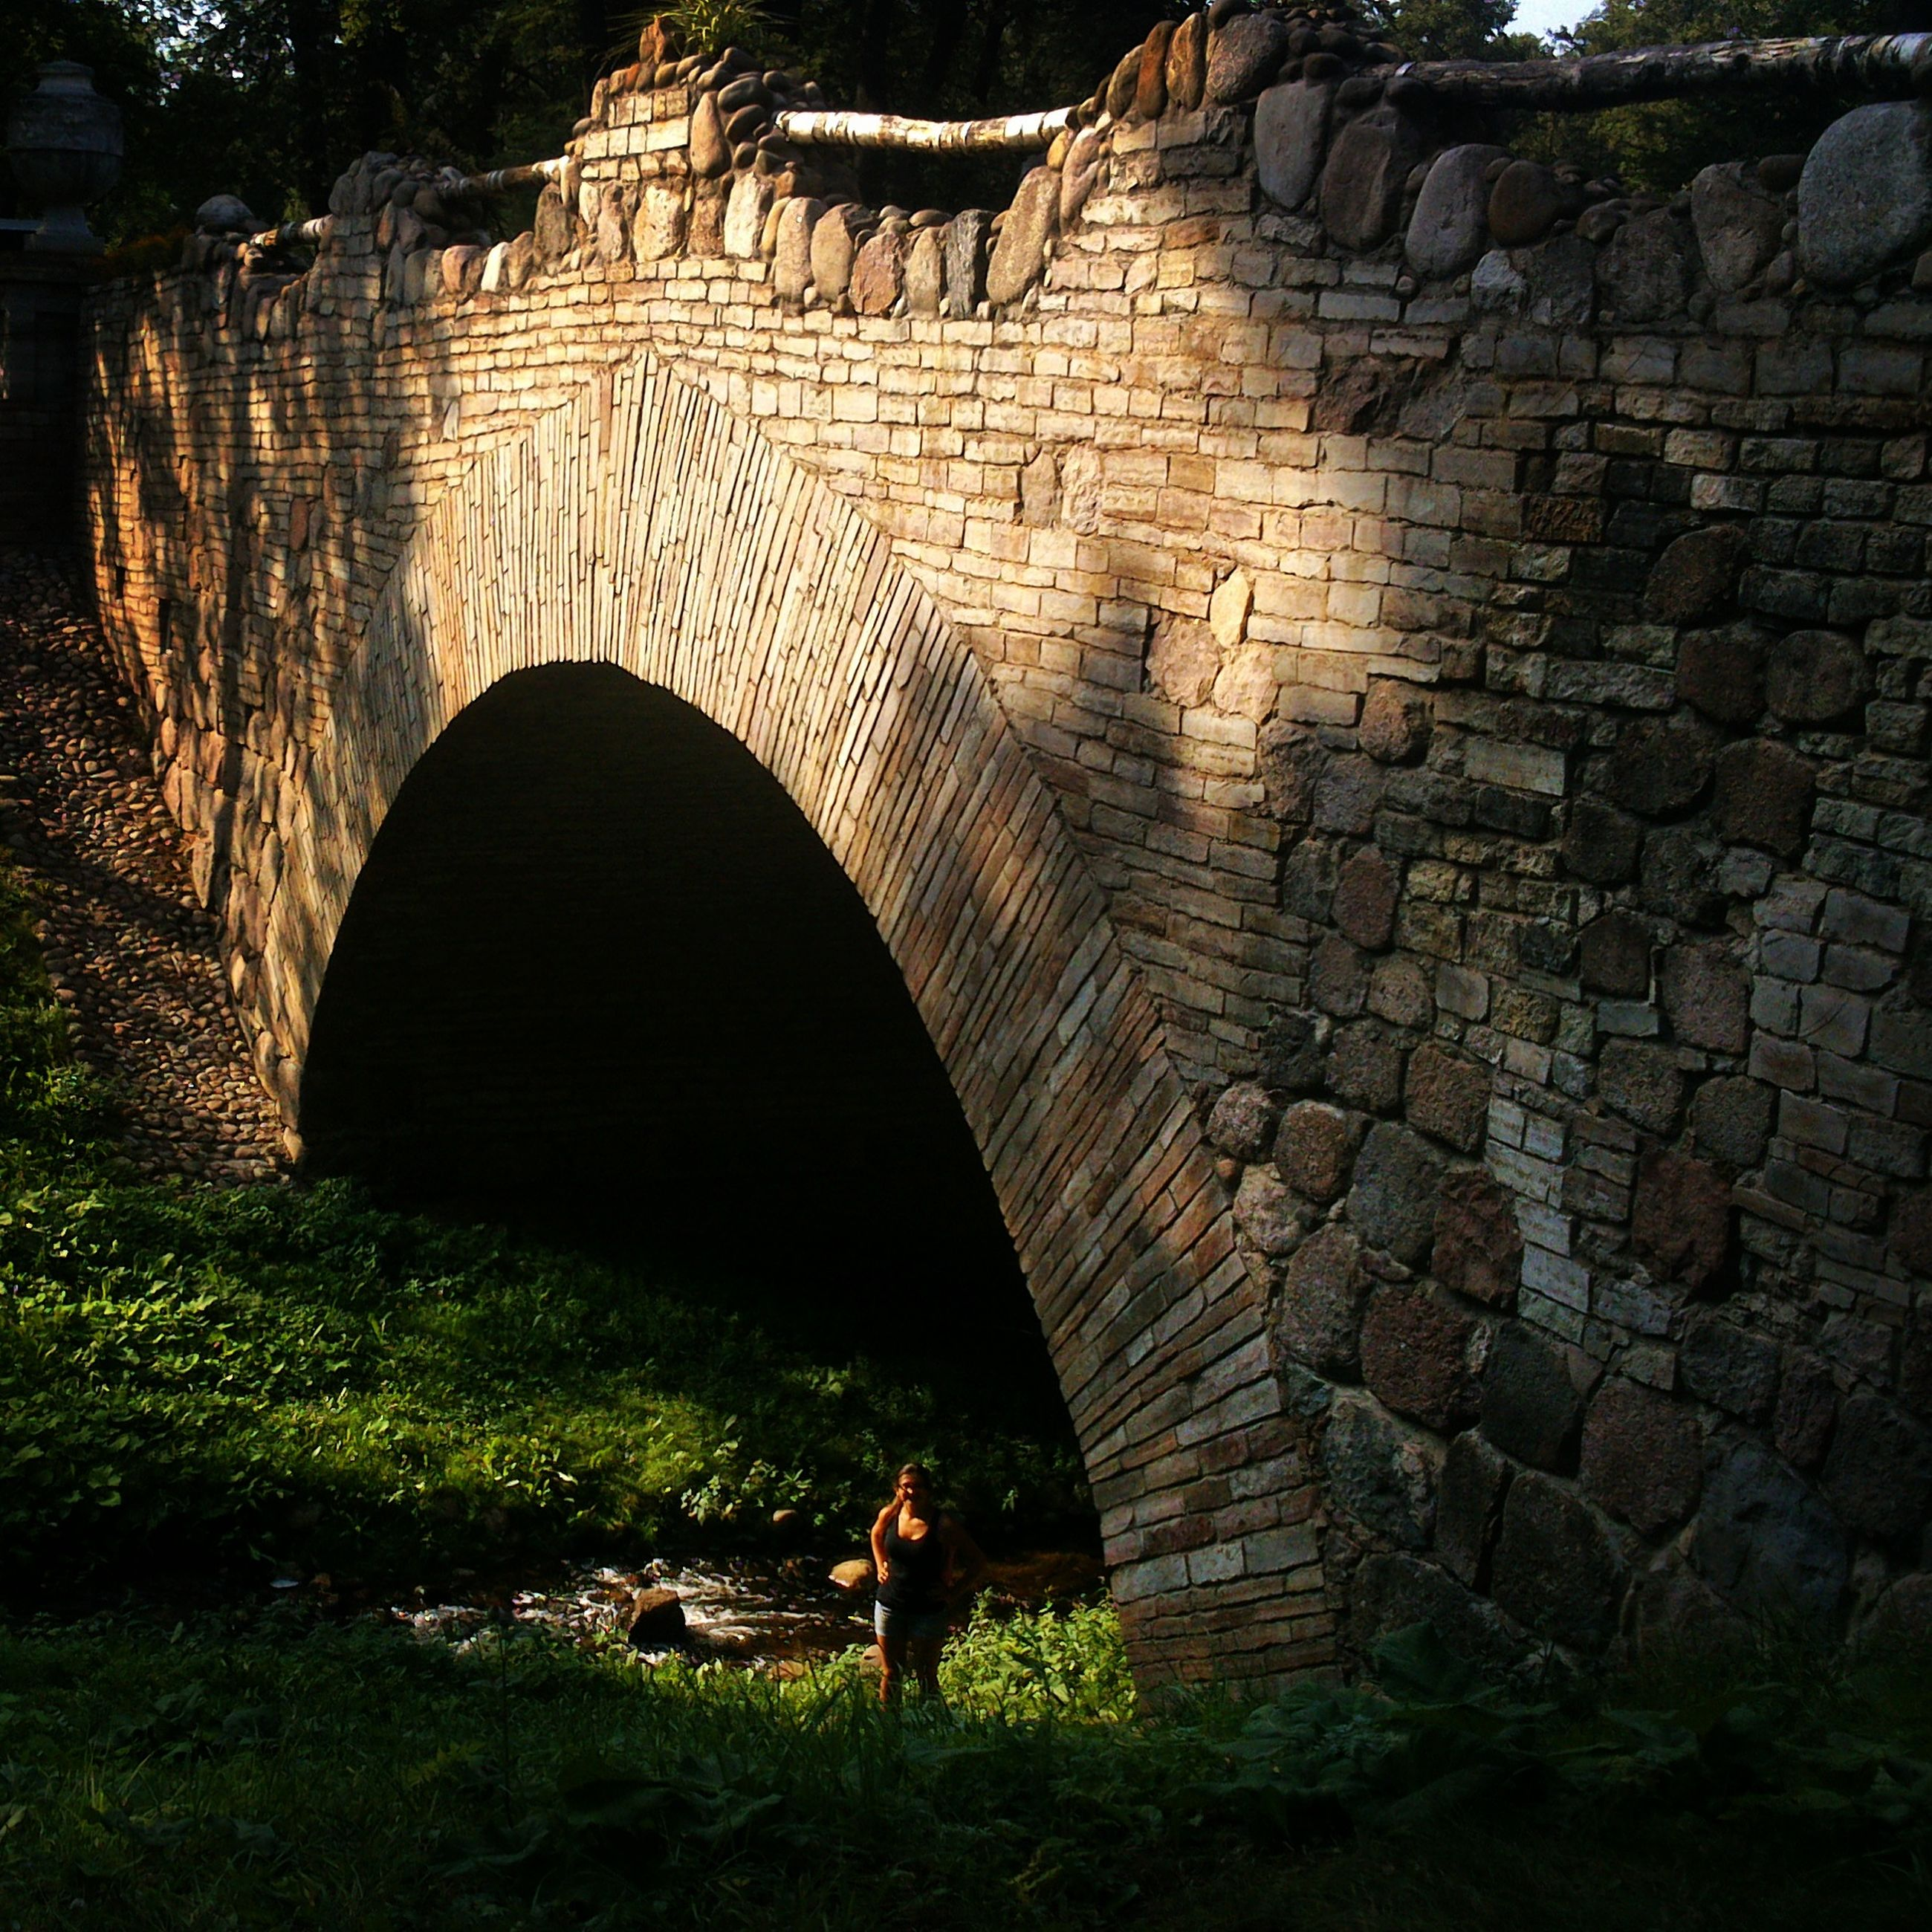 arch, architecture, built structure, history, stone wall, old ruin, men, ancient, standing, old, tunnel, building exterior, lifestyles, leisure activity, day, archway, travel destinations, wall - building feature